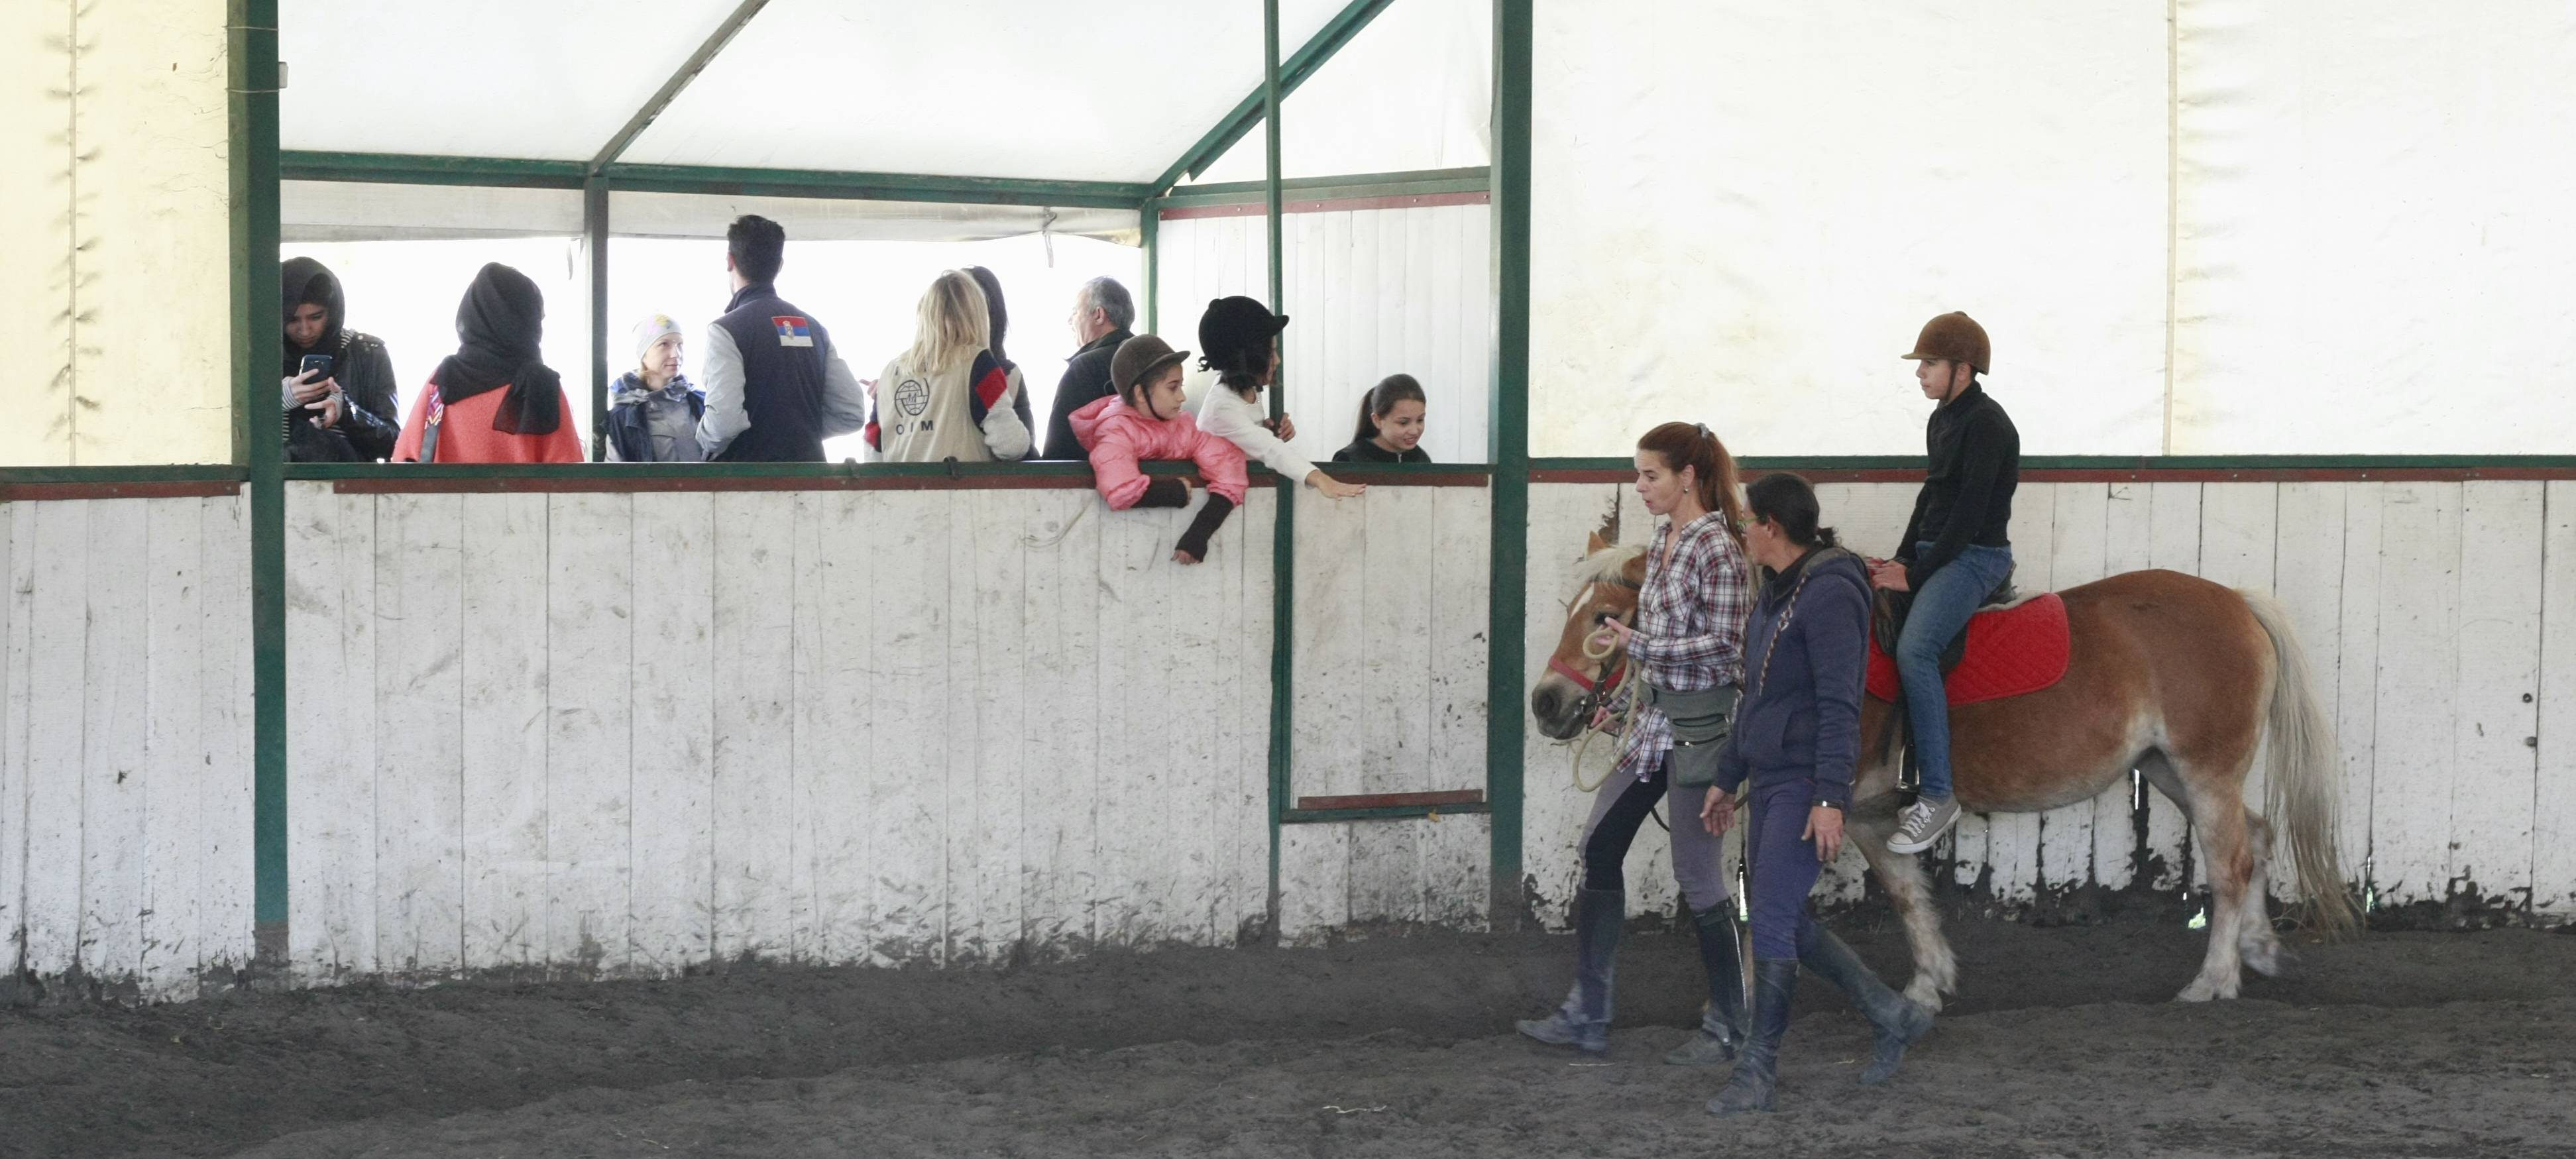 Migrants from the Asylum Centre in Krnjaca visited the Equestrian Club in Belgrade